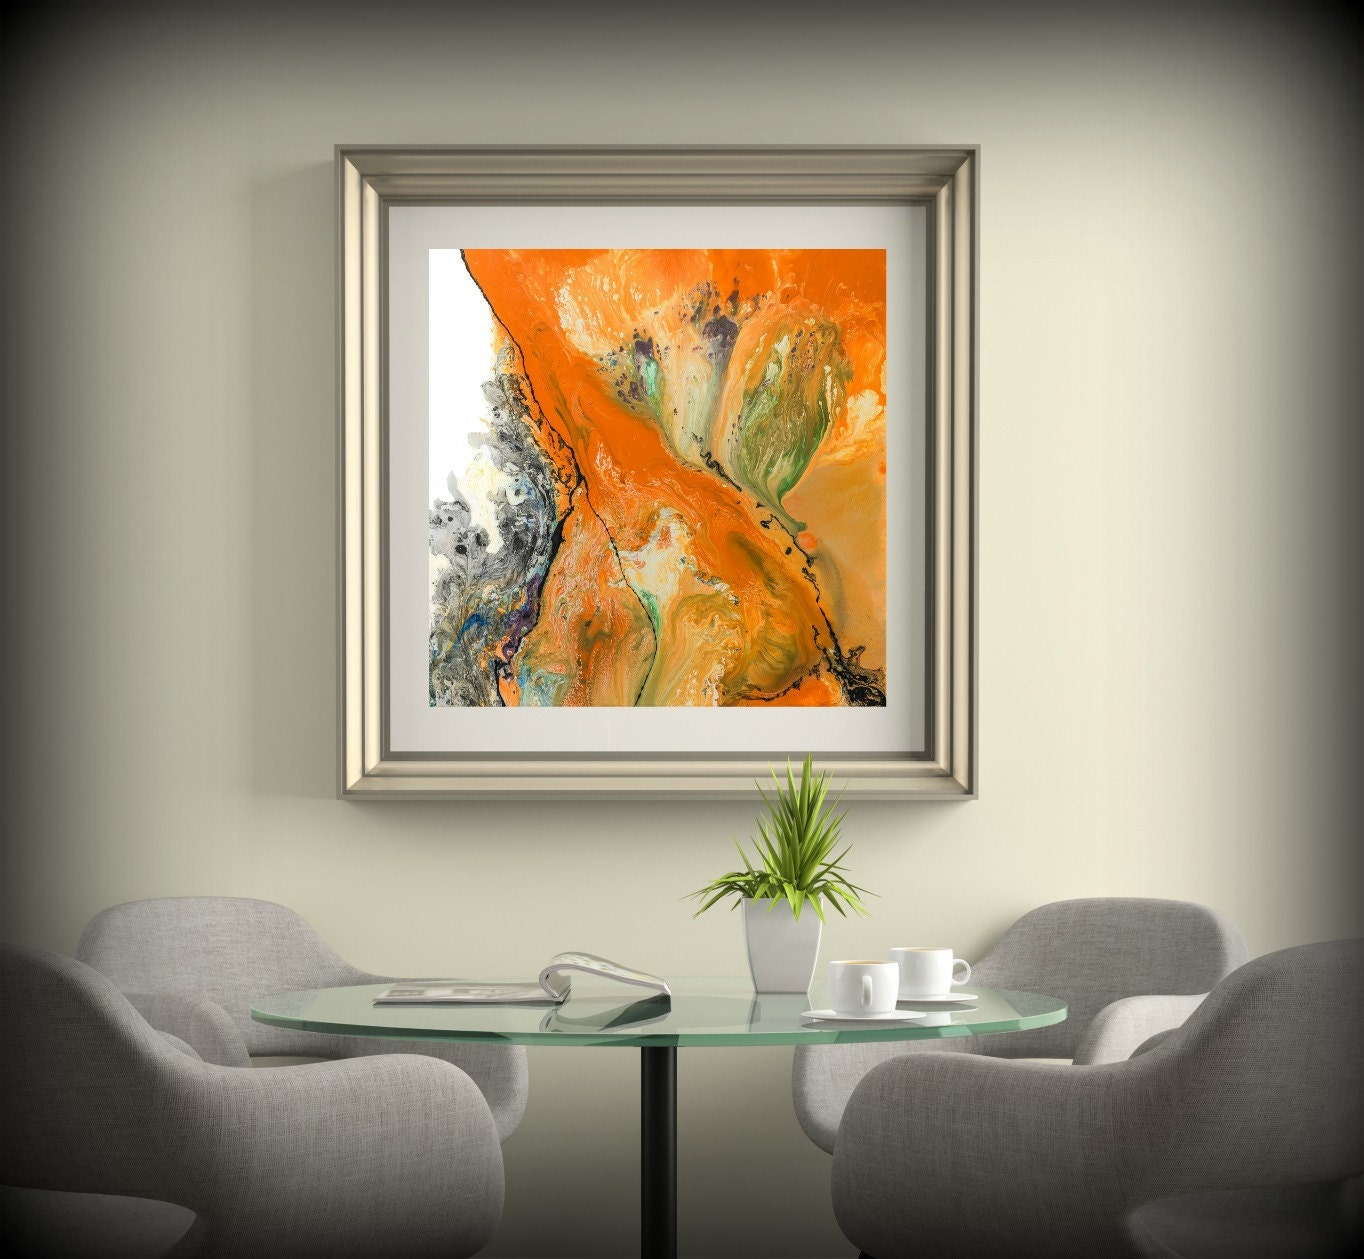 Living room decor square wall decor orange wall art dining for Dining room wall art images